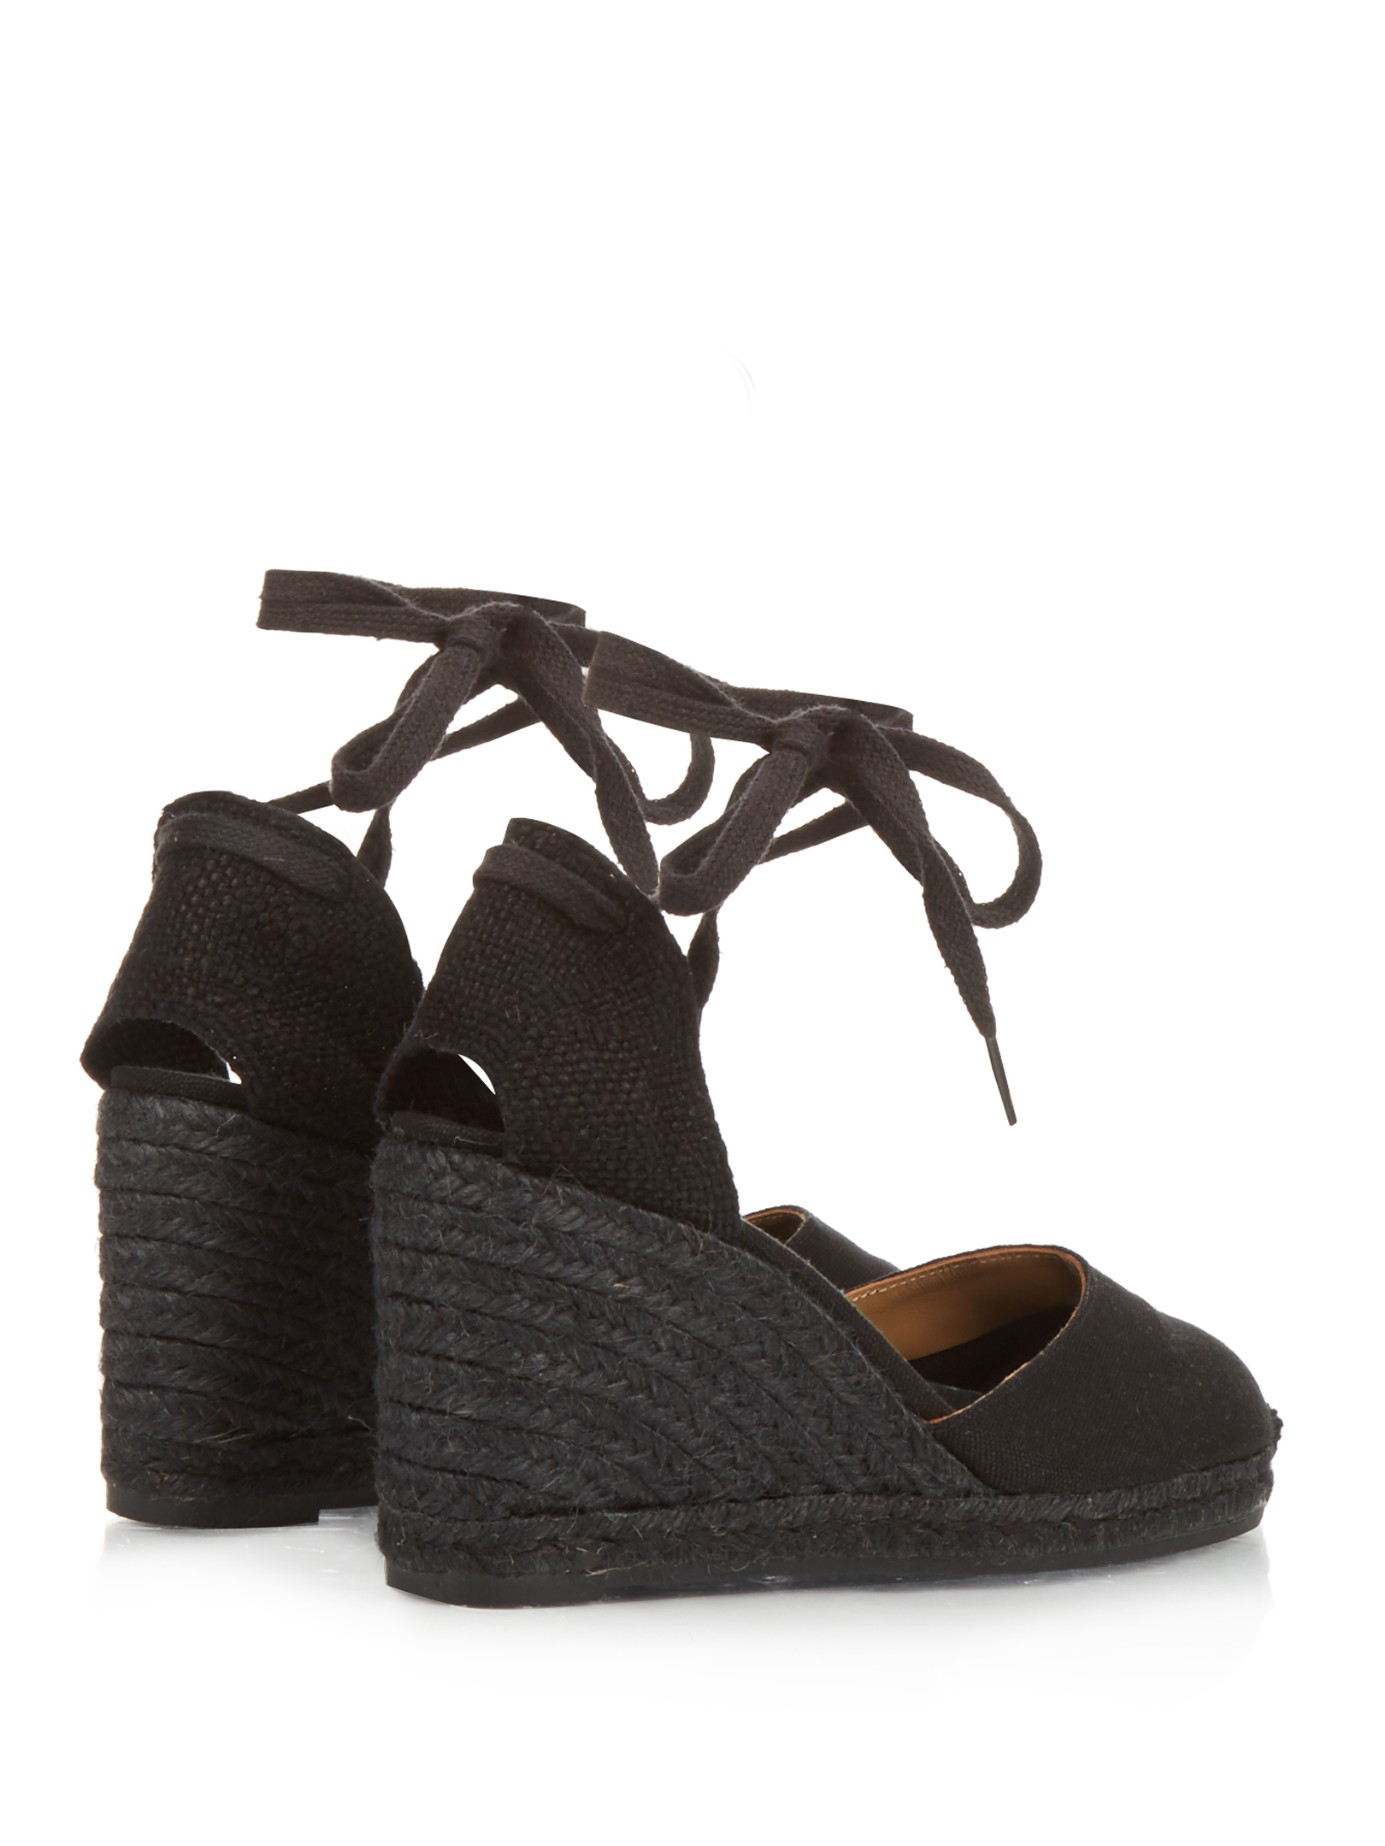 Castaner Carina Espadrille Wedges In Black Lyst